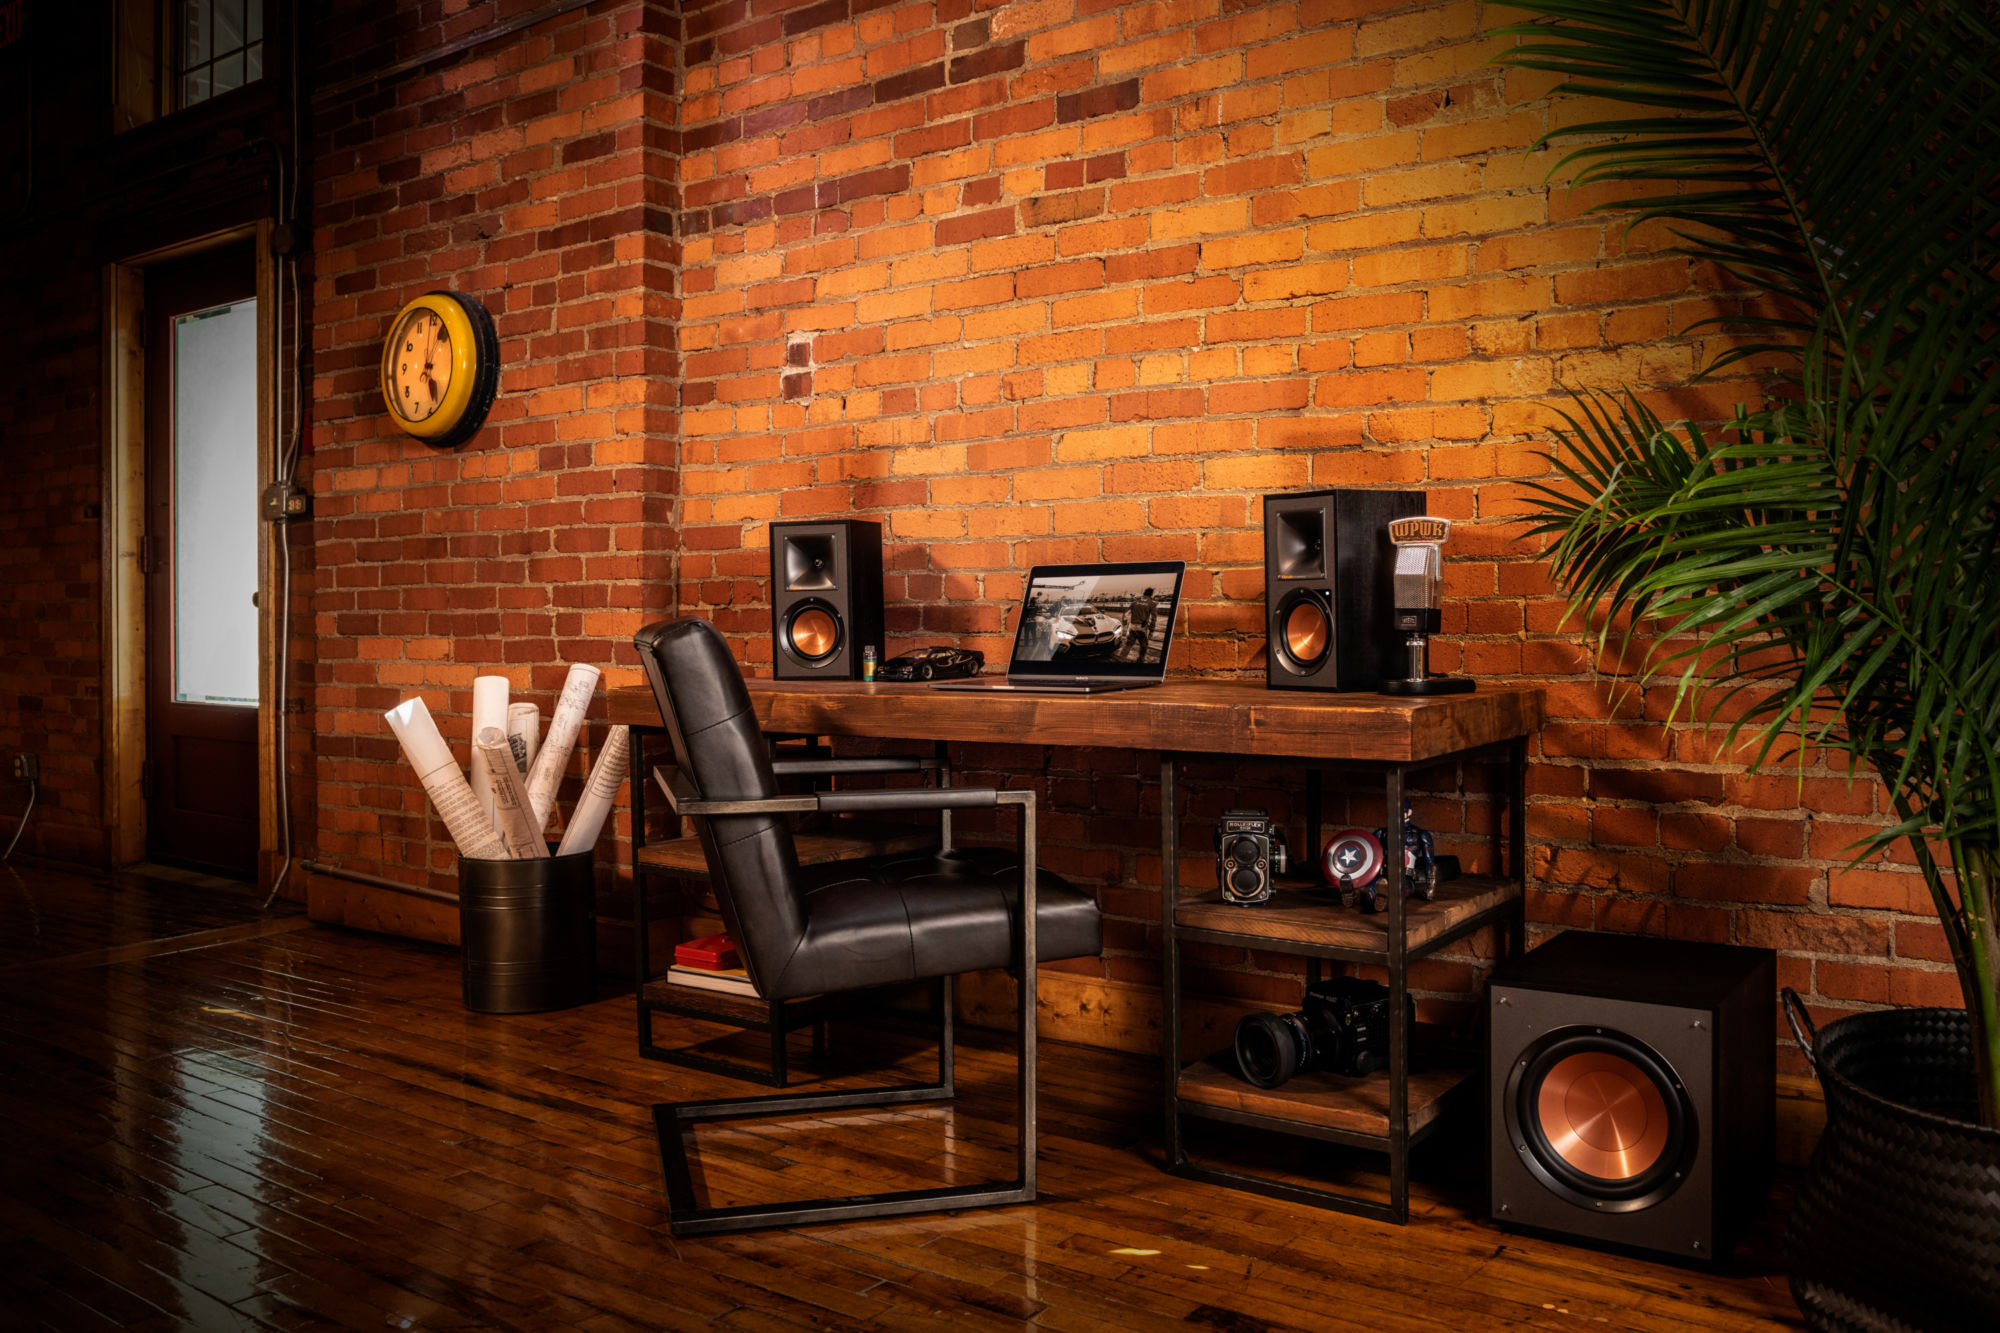 Klipsch Reference Powered Speakers Lifestyle Gnm21